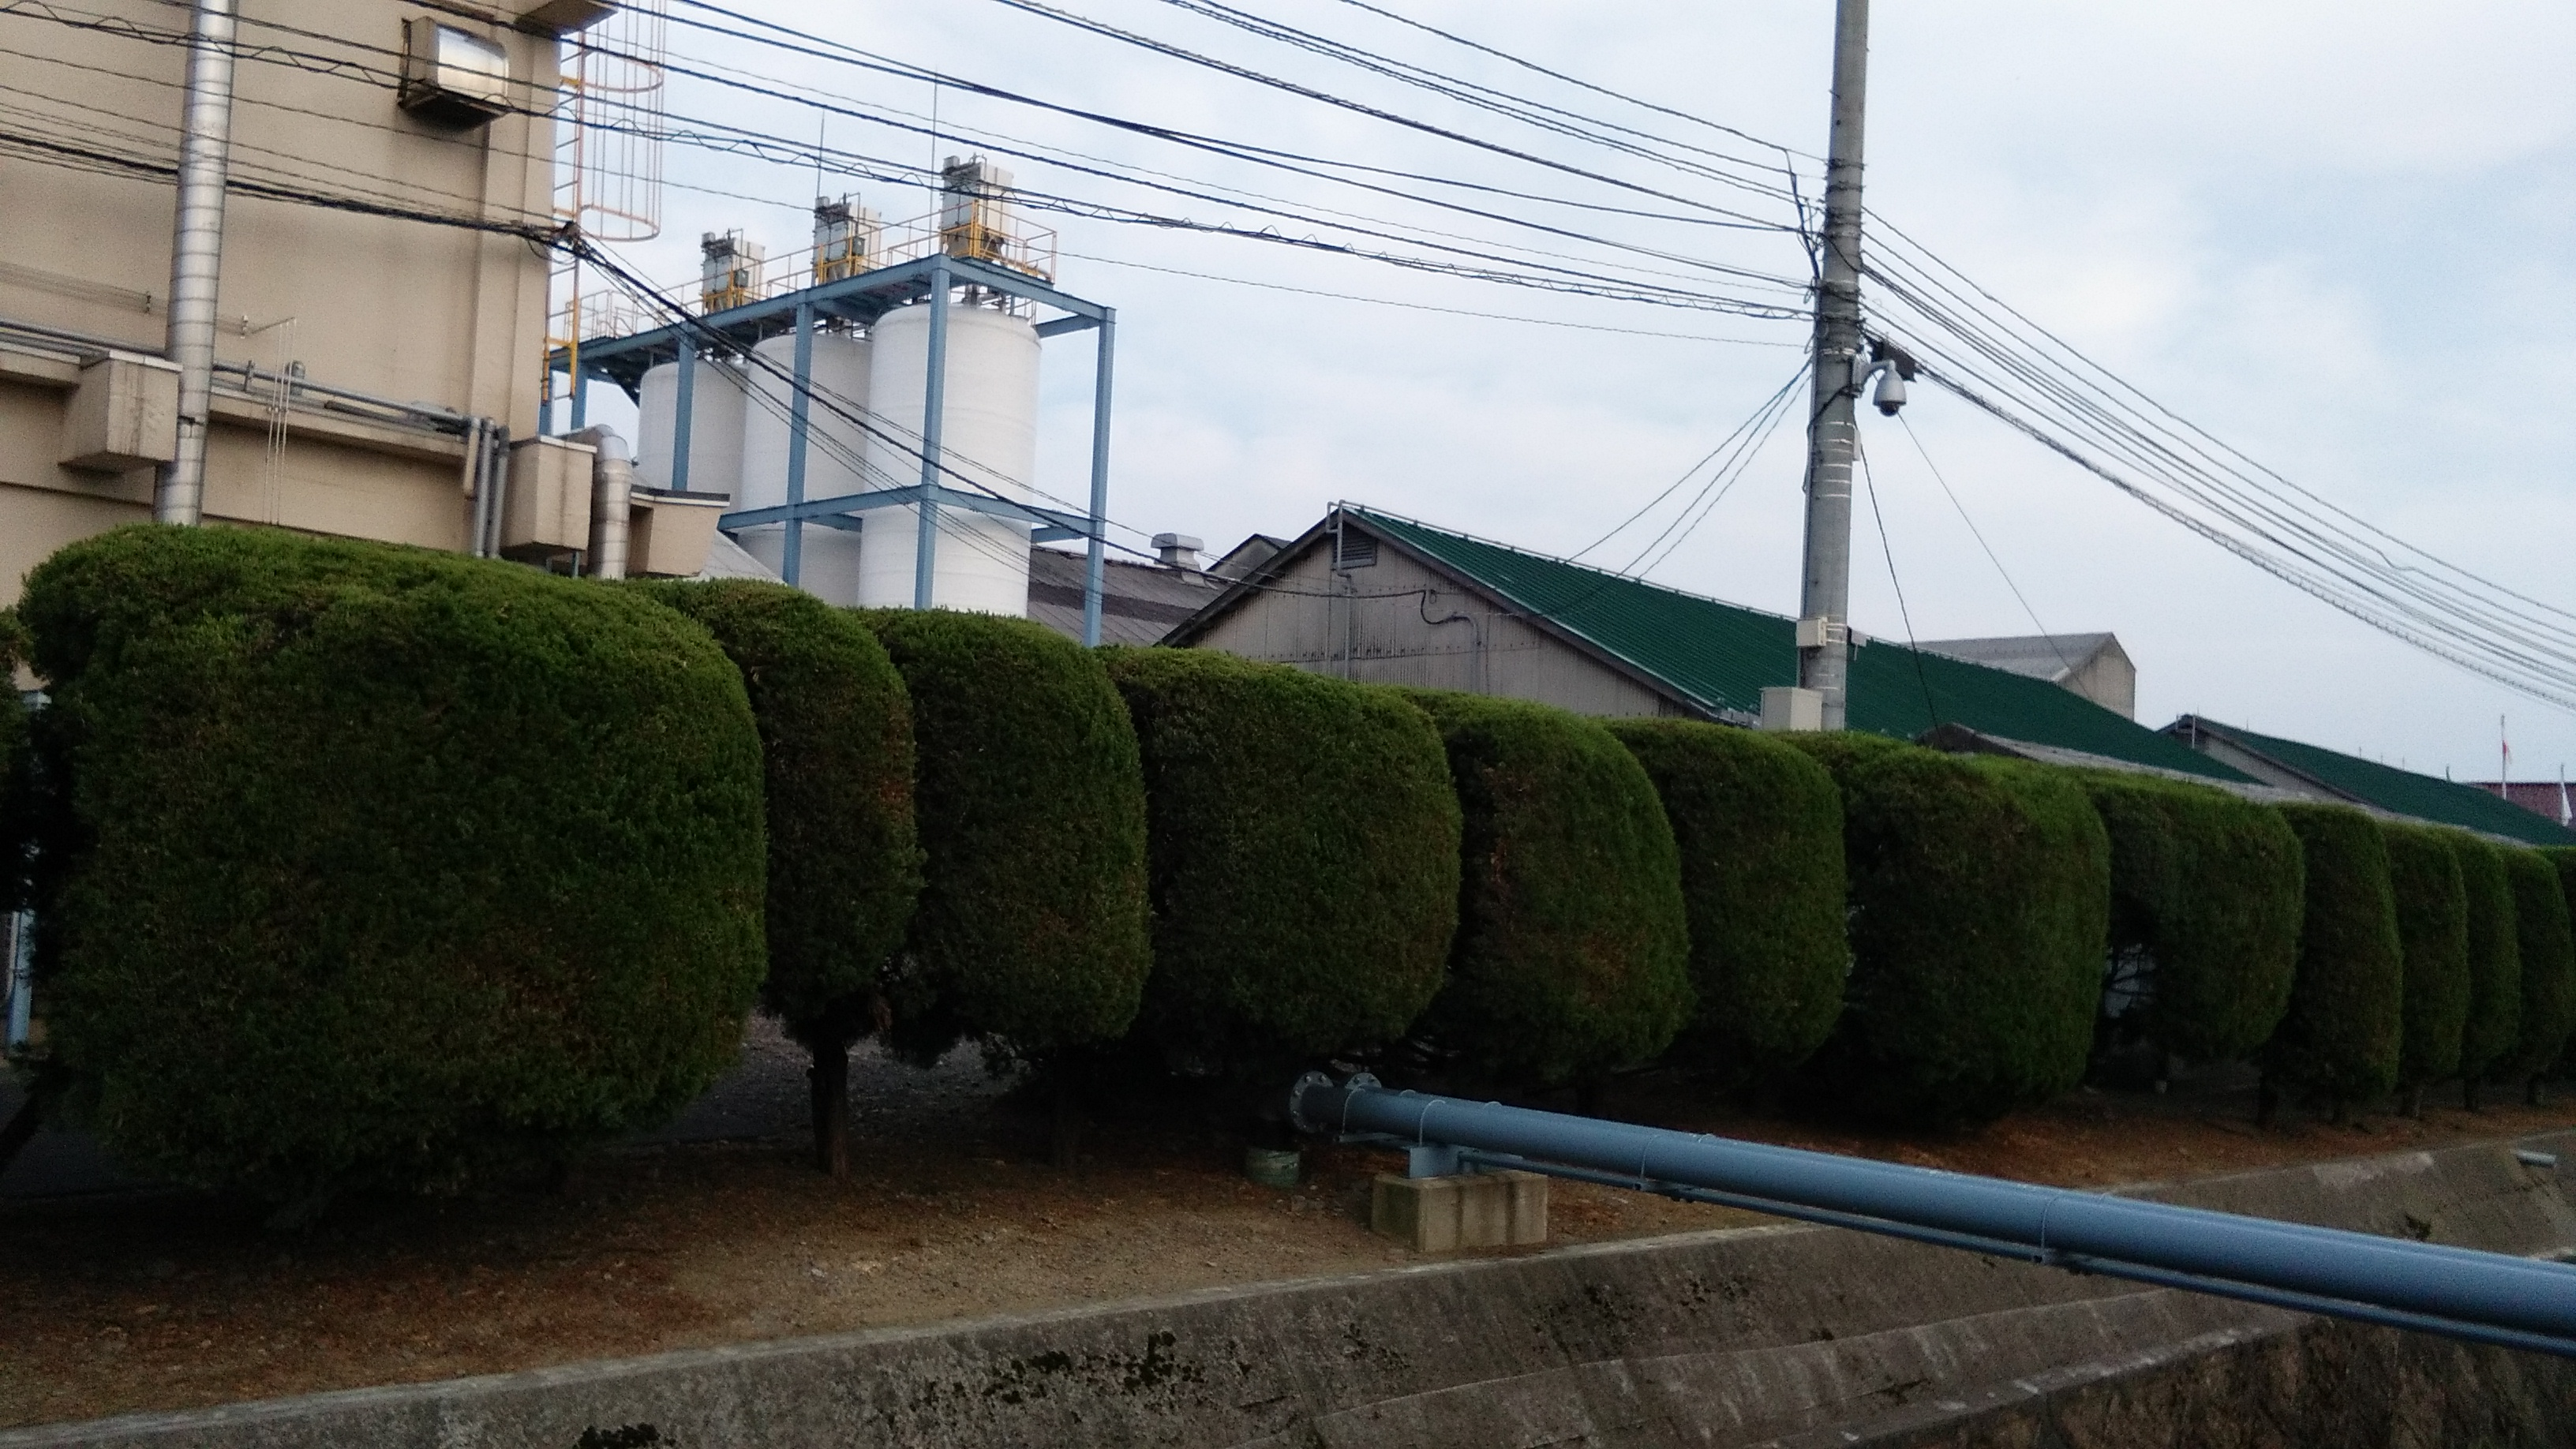 Perfectly cut trees around a factory building